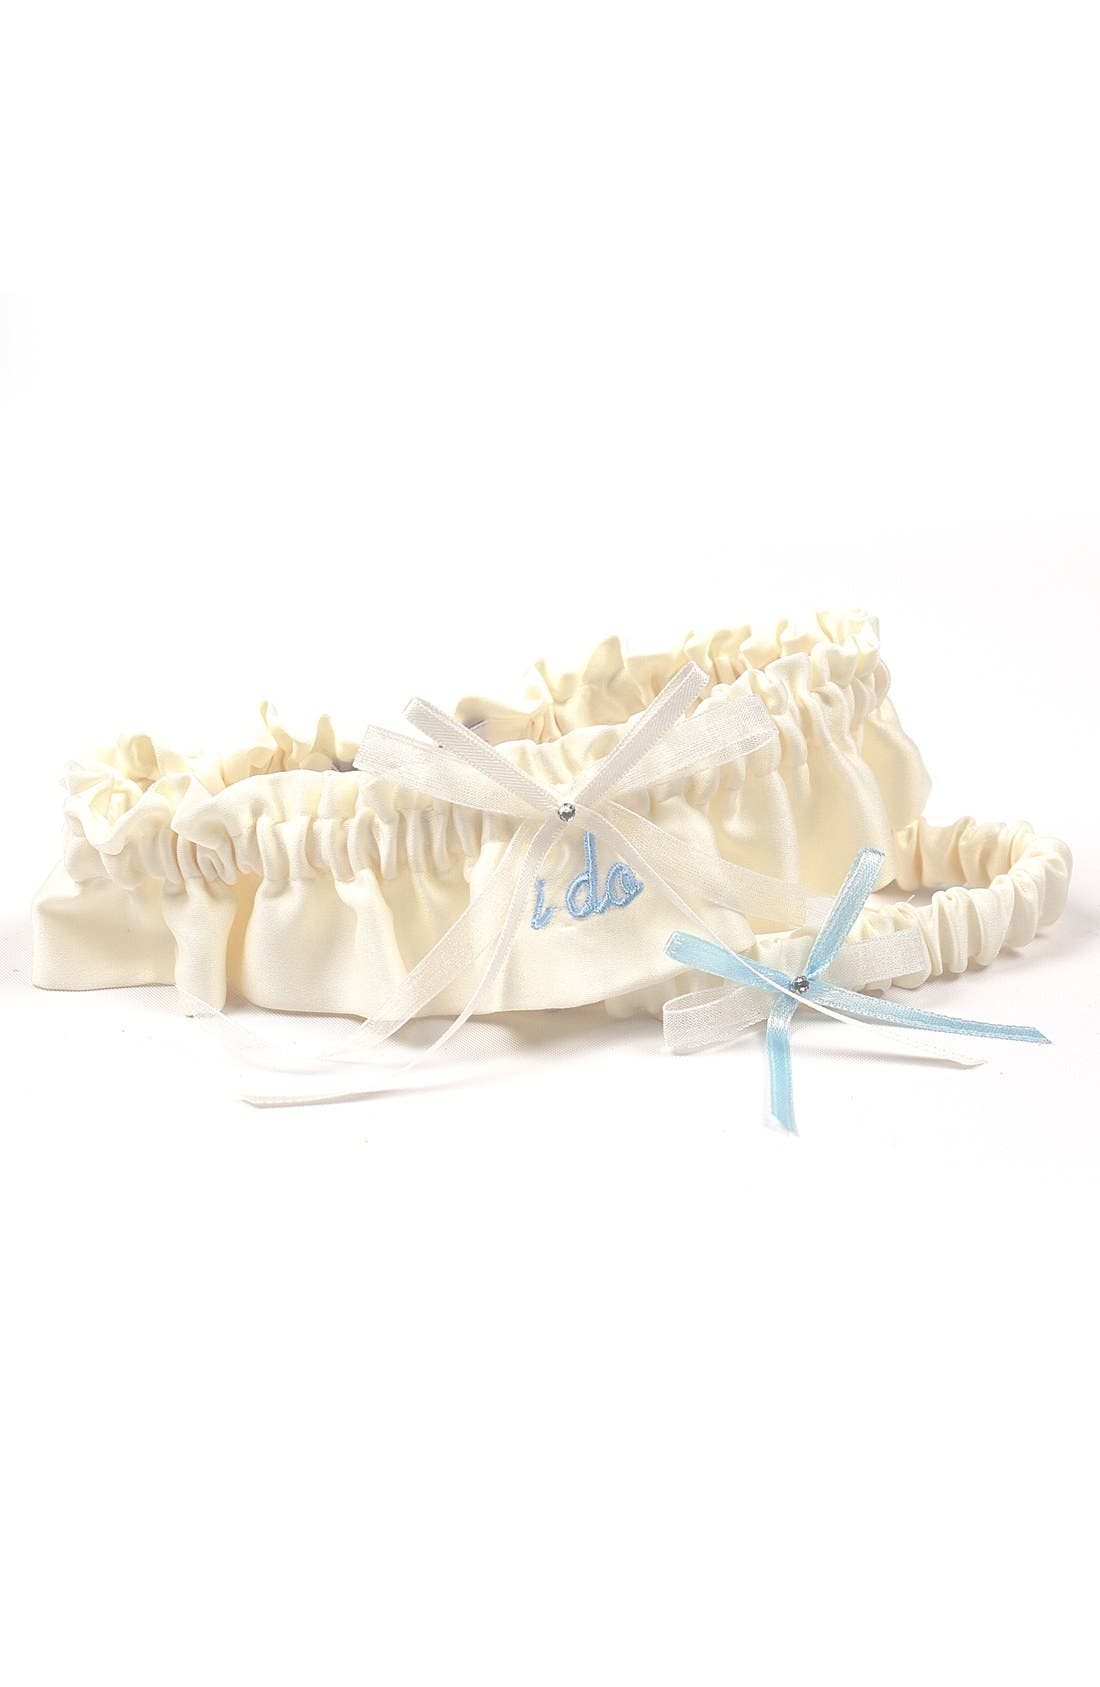 Cathy's Concepts 'I Do' Embroidered Garter